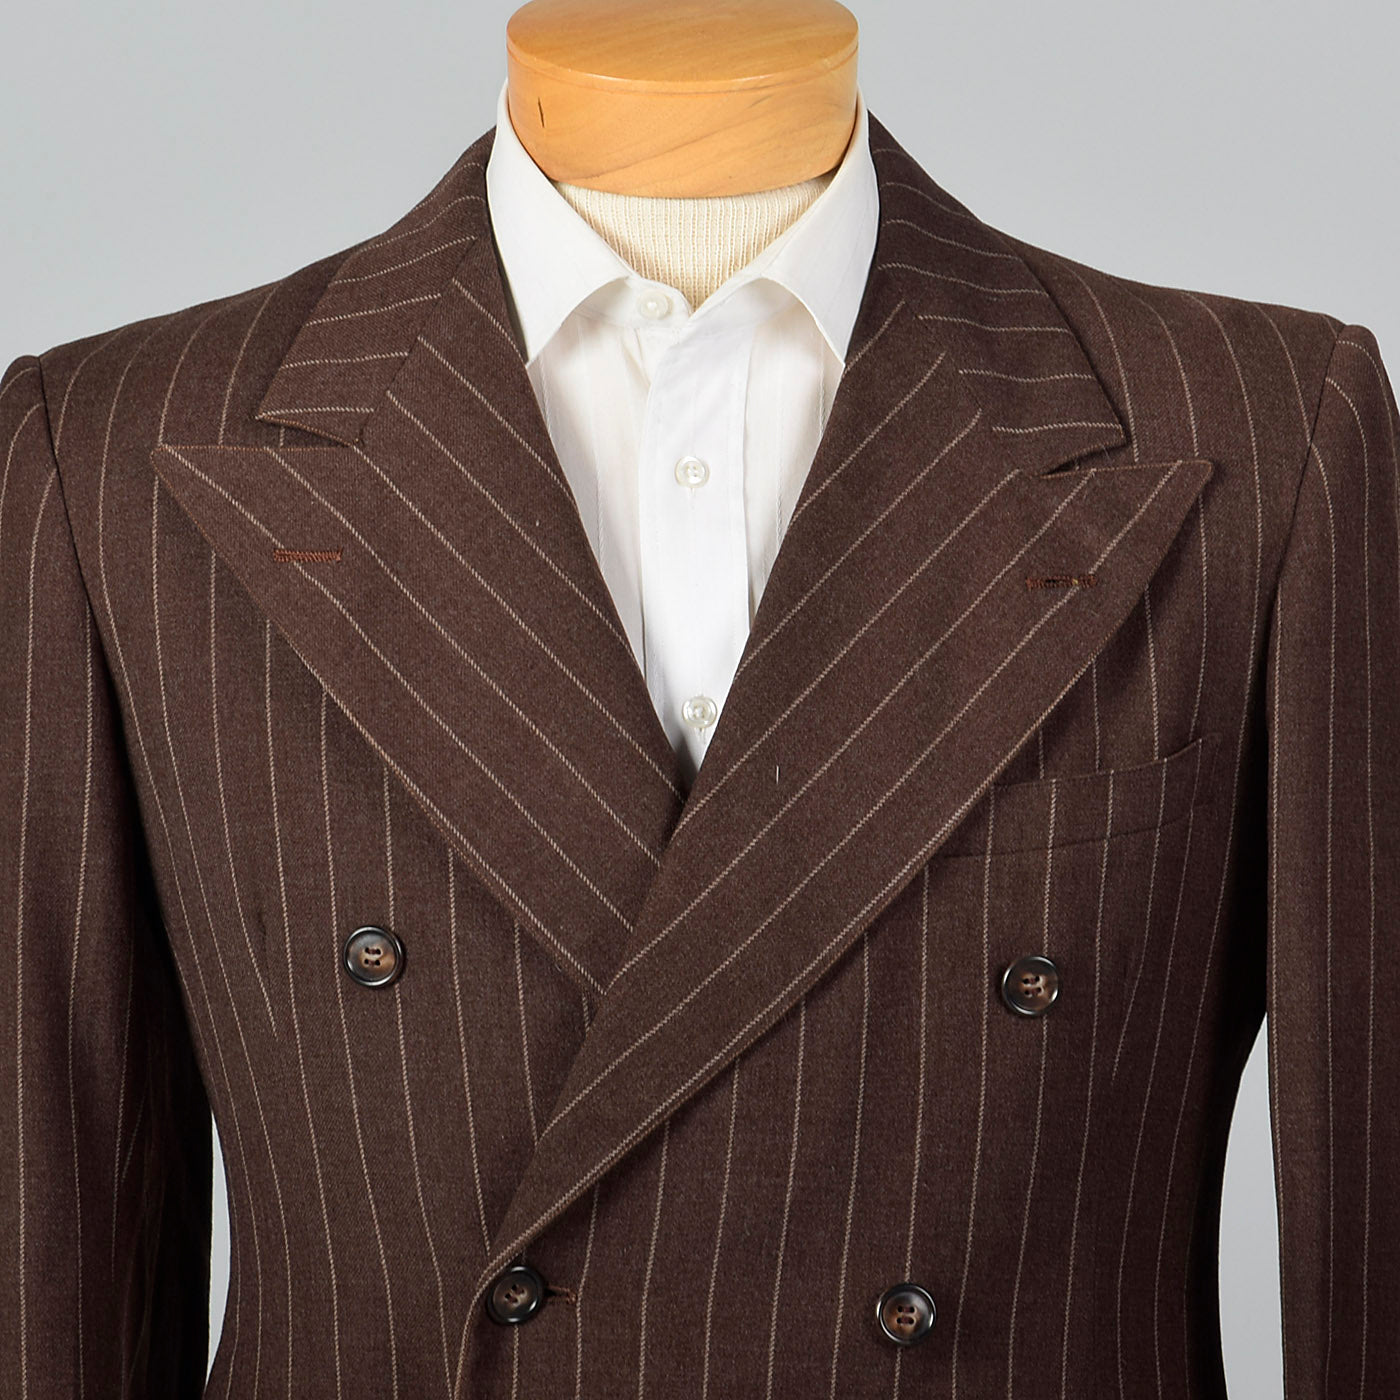 1940s Mens Brown Striped Jacket with Double Breasted Front